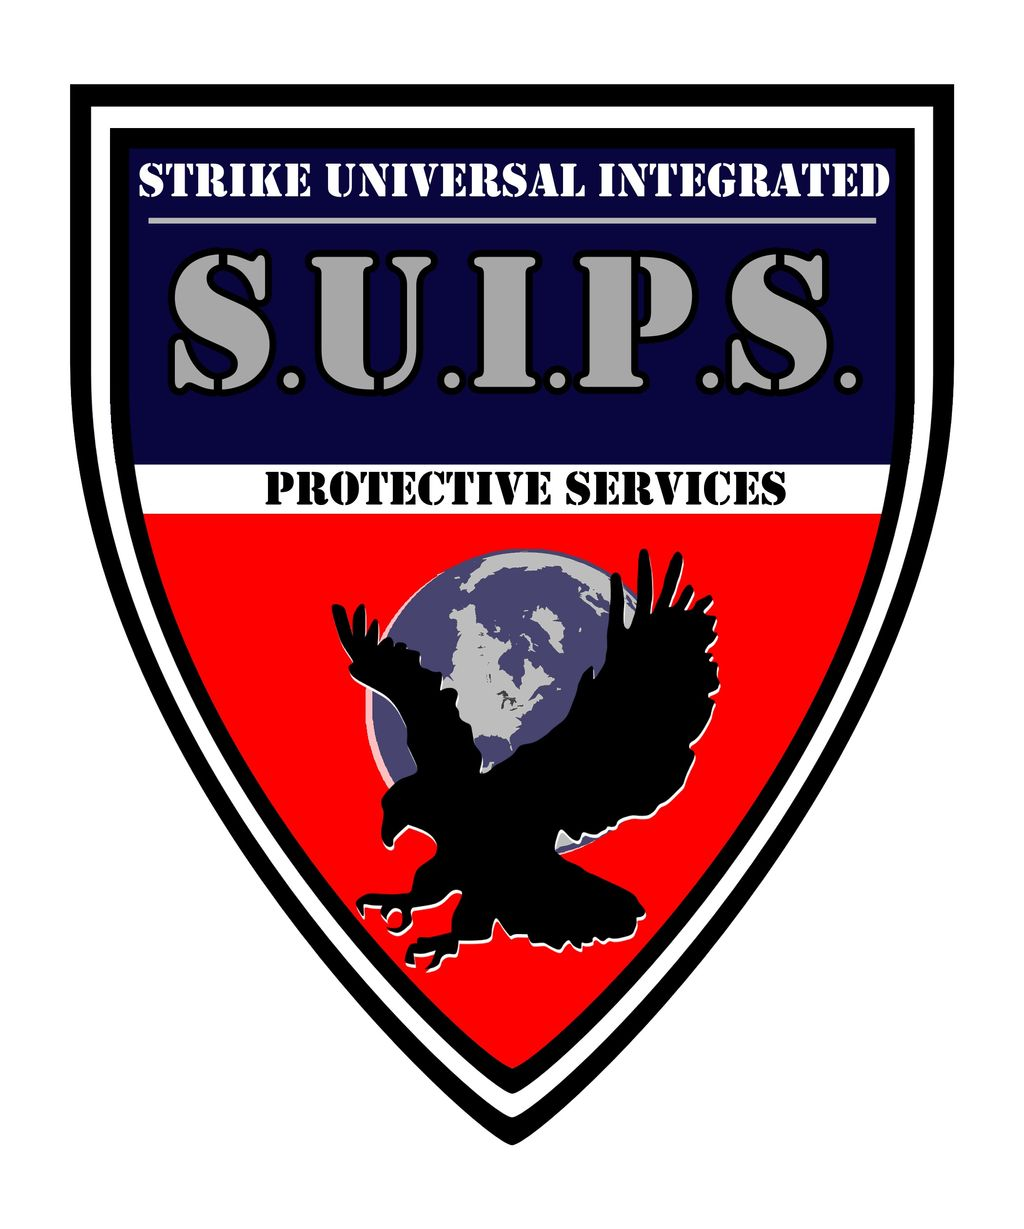 STRIKE Universal Integrated  Protective Services